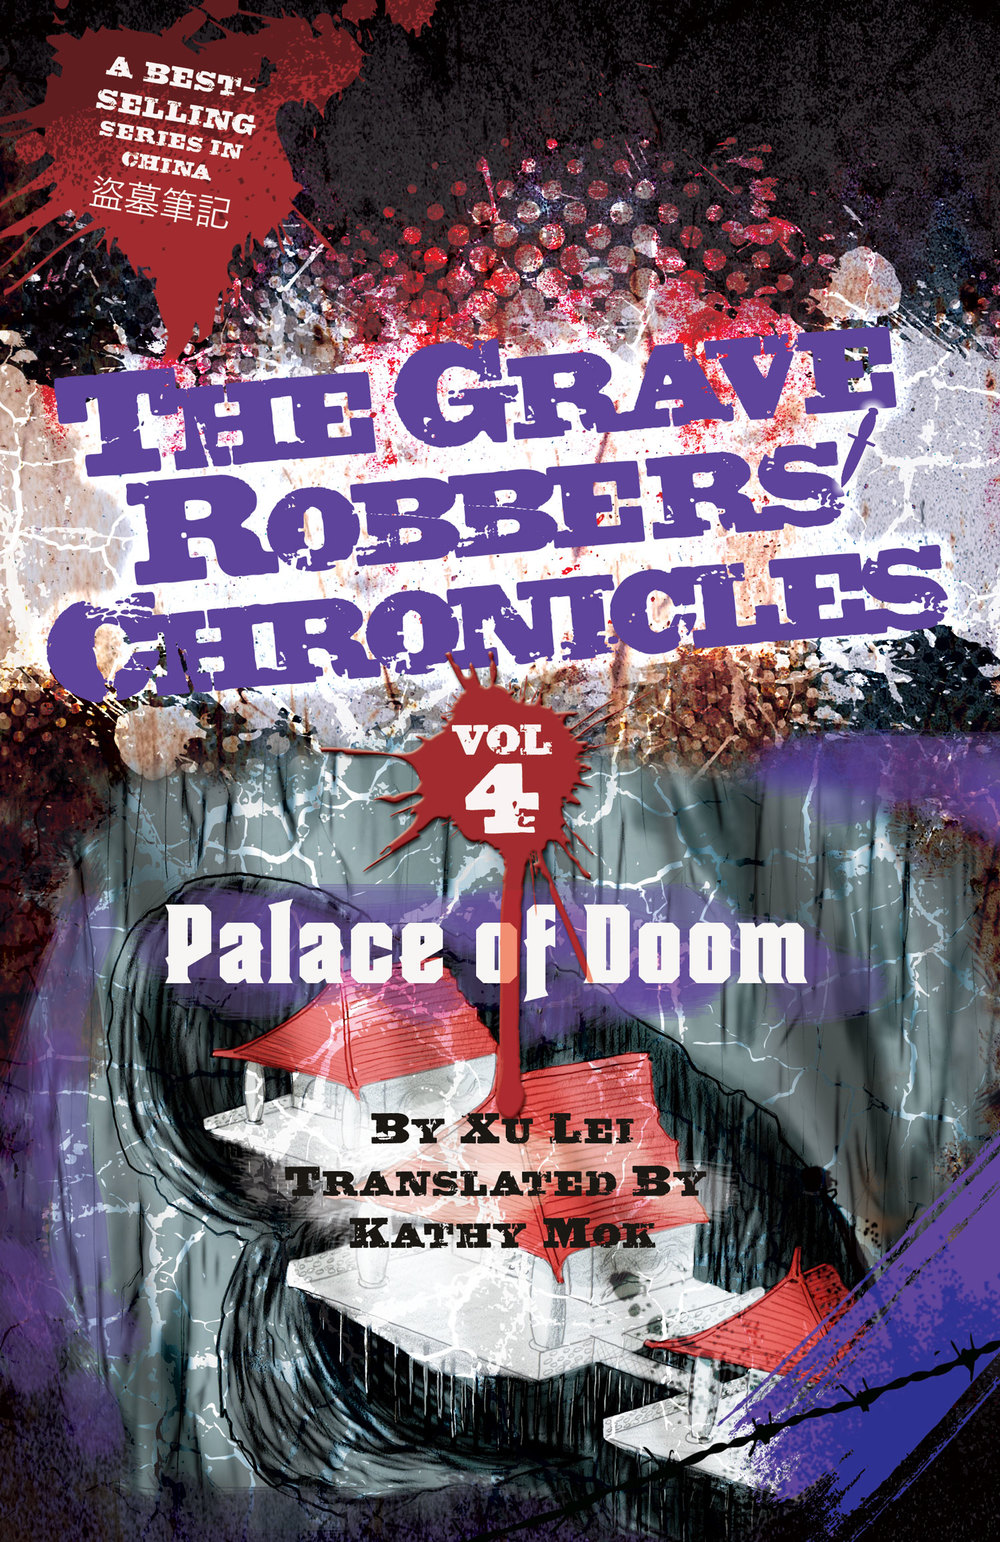 Vol. 4: Palace of Doom